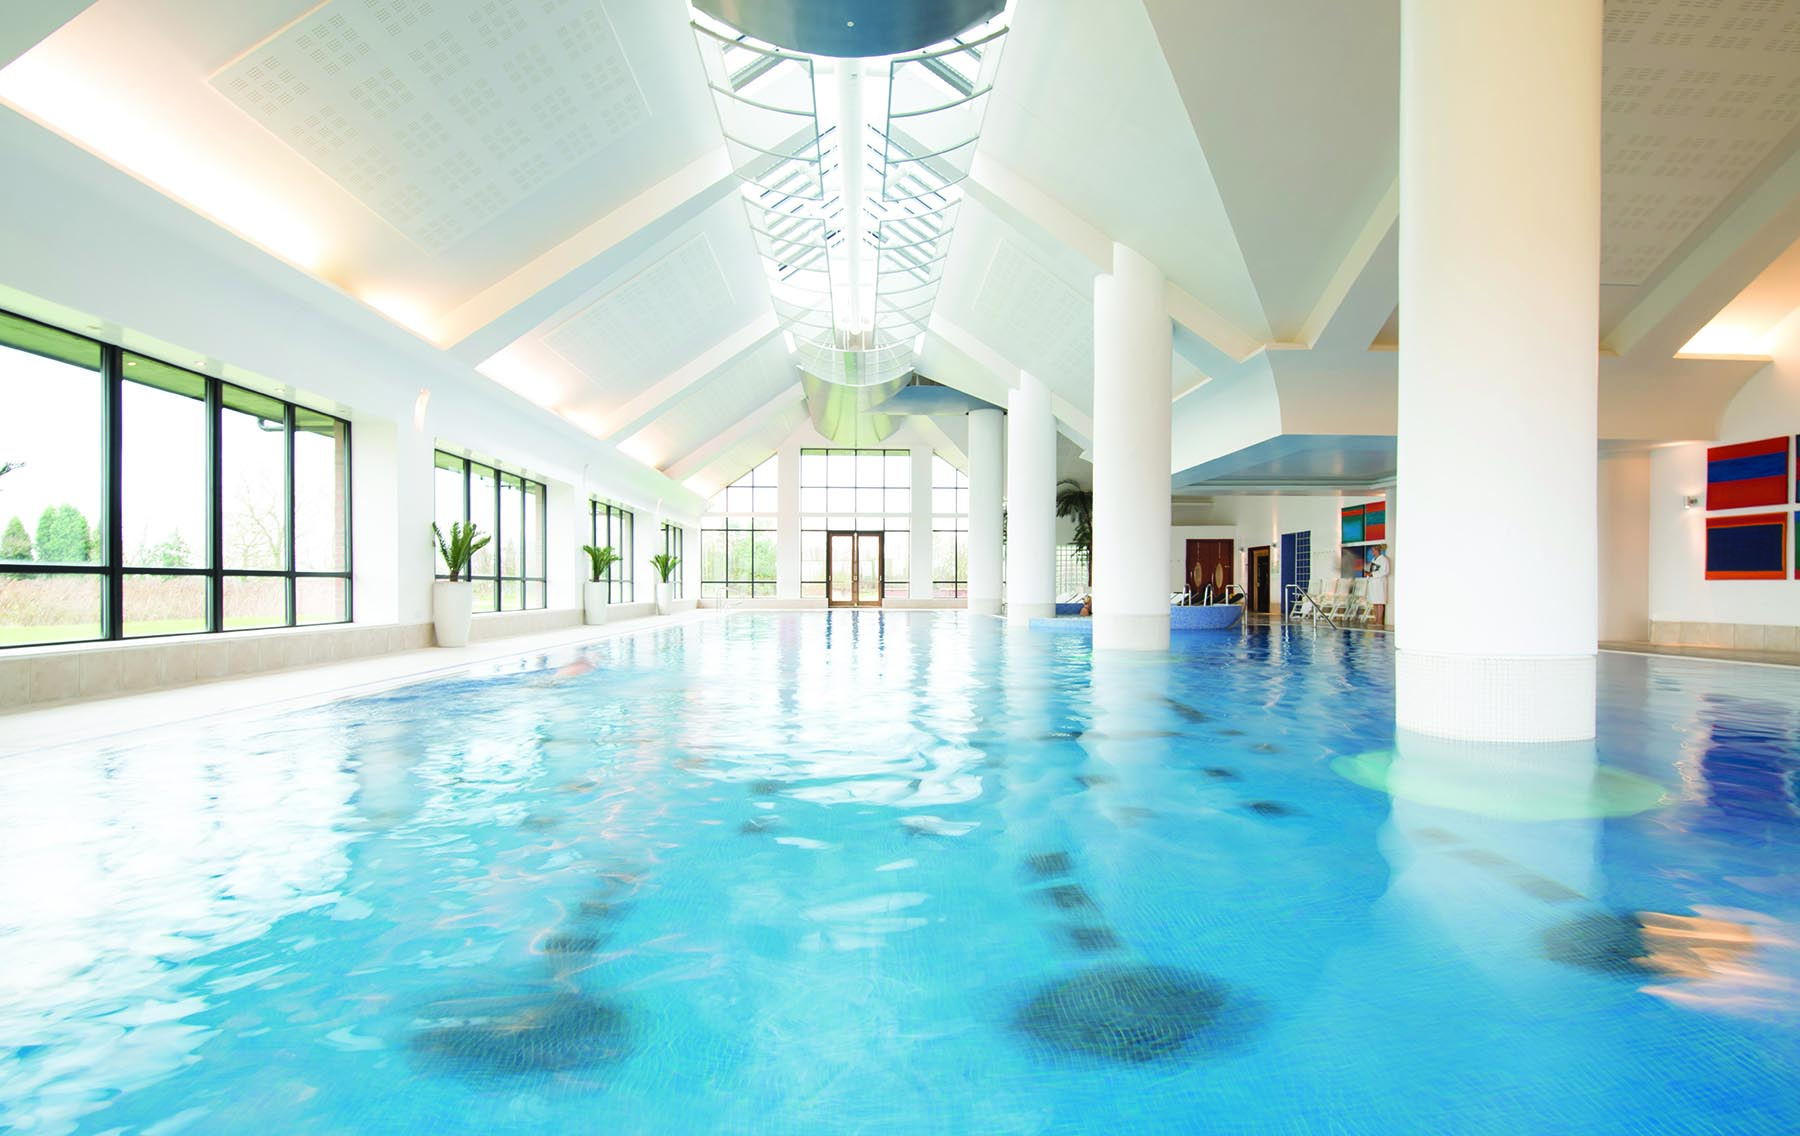 A BLISSFUL SPA ESCAPE AT CHAMPNEYS SPRINGS